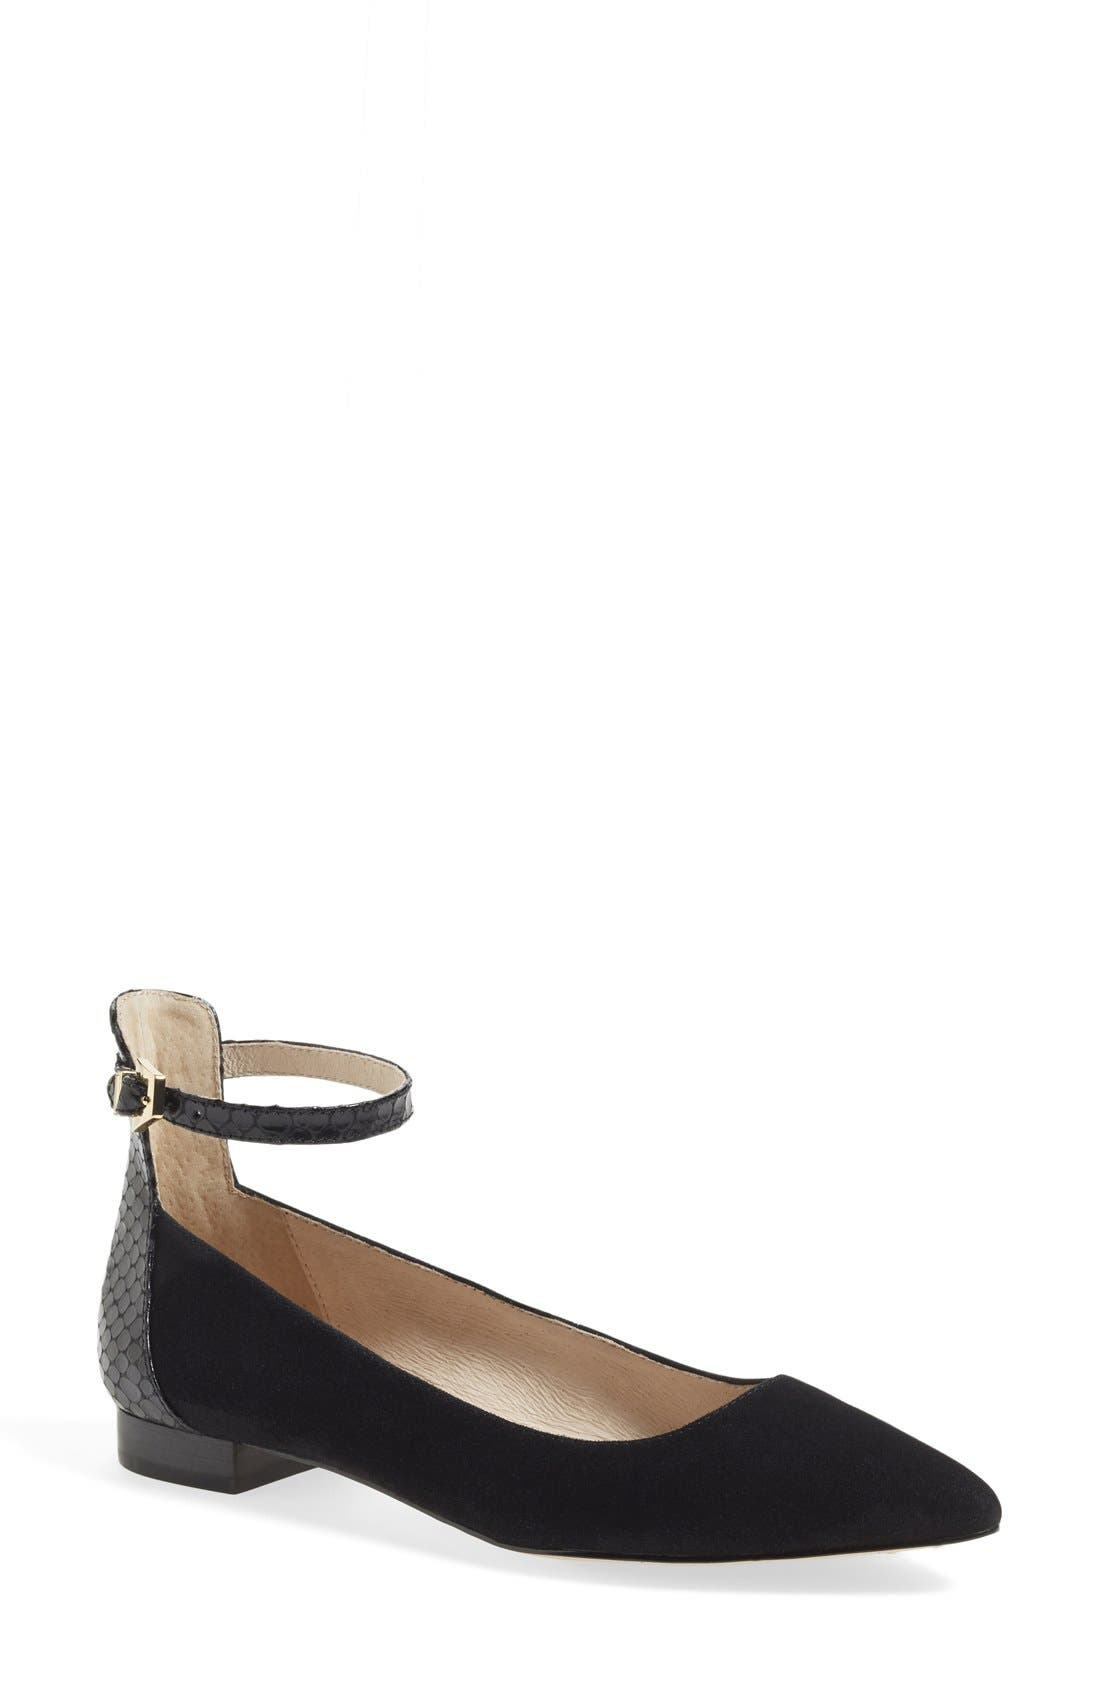 LOUISE ET CIE,                             'Barry' Ankle Strap Flat,                             Main thumbnail 1, color,                             001